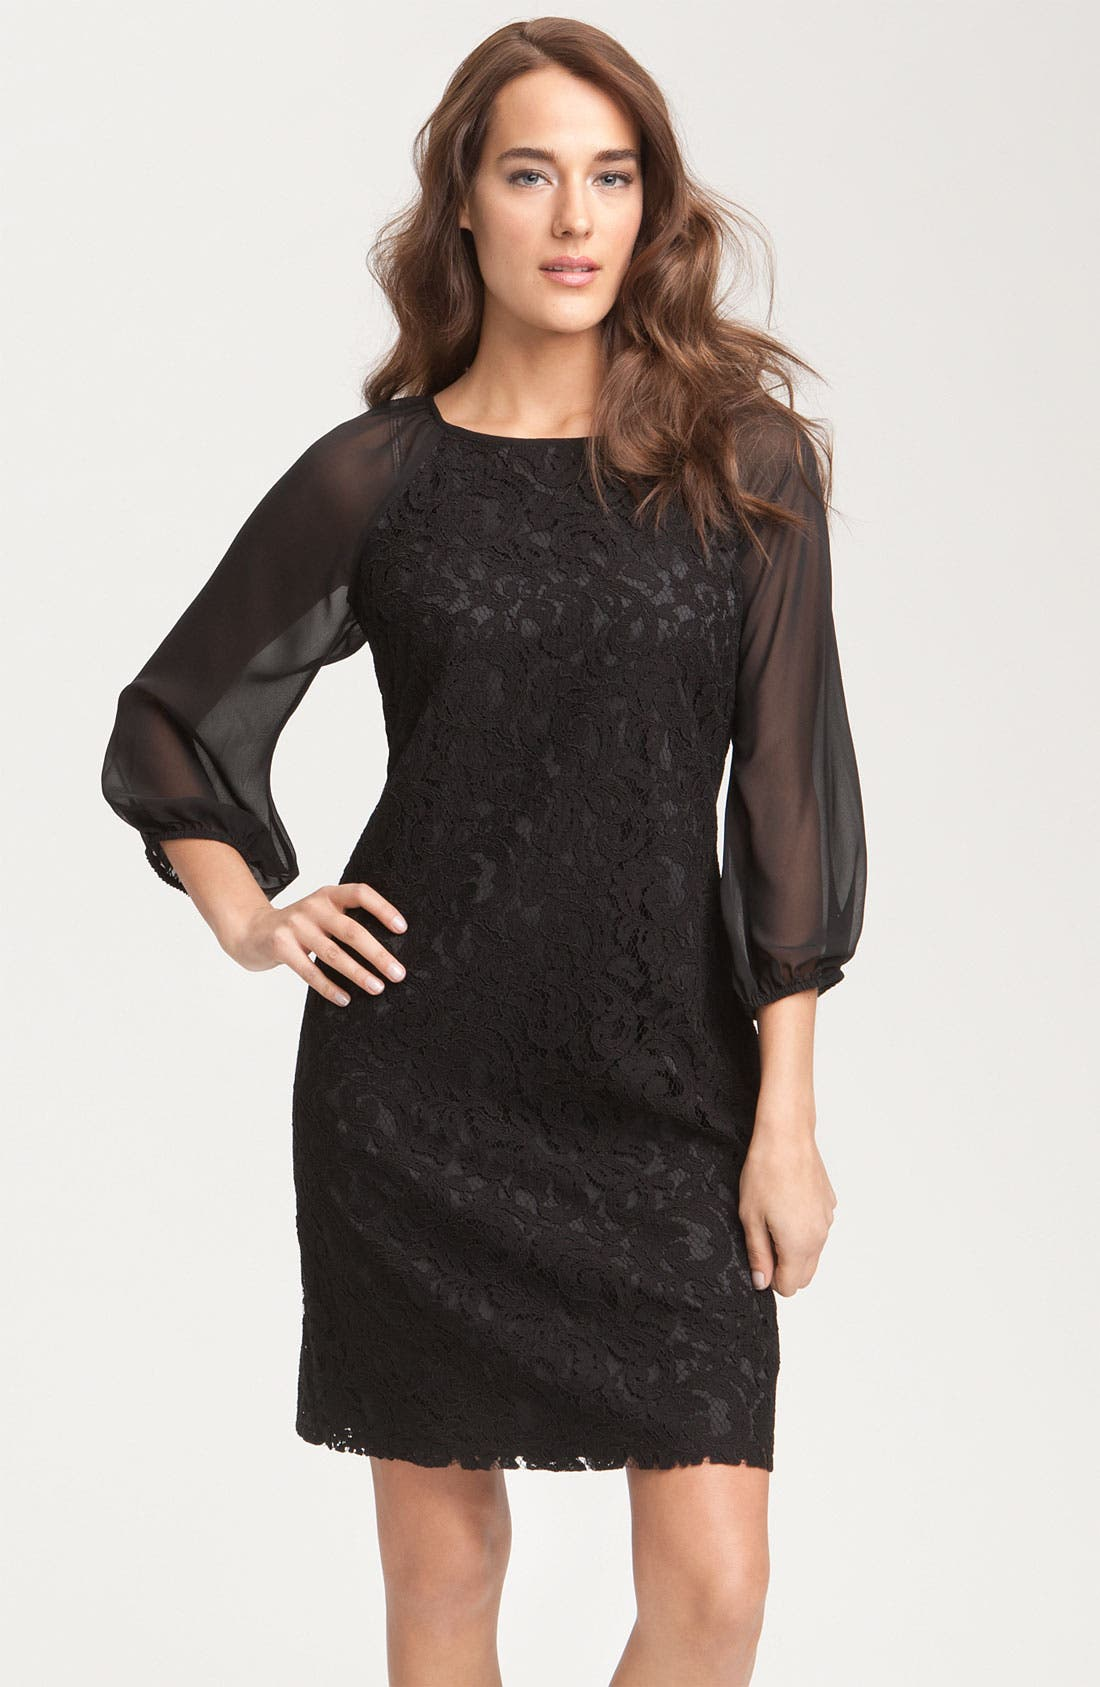 Alternate Image 1 Selected - Adrianna Papell Lace & Chiffon Shift Dress